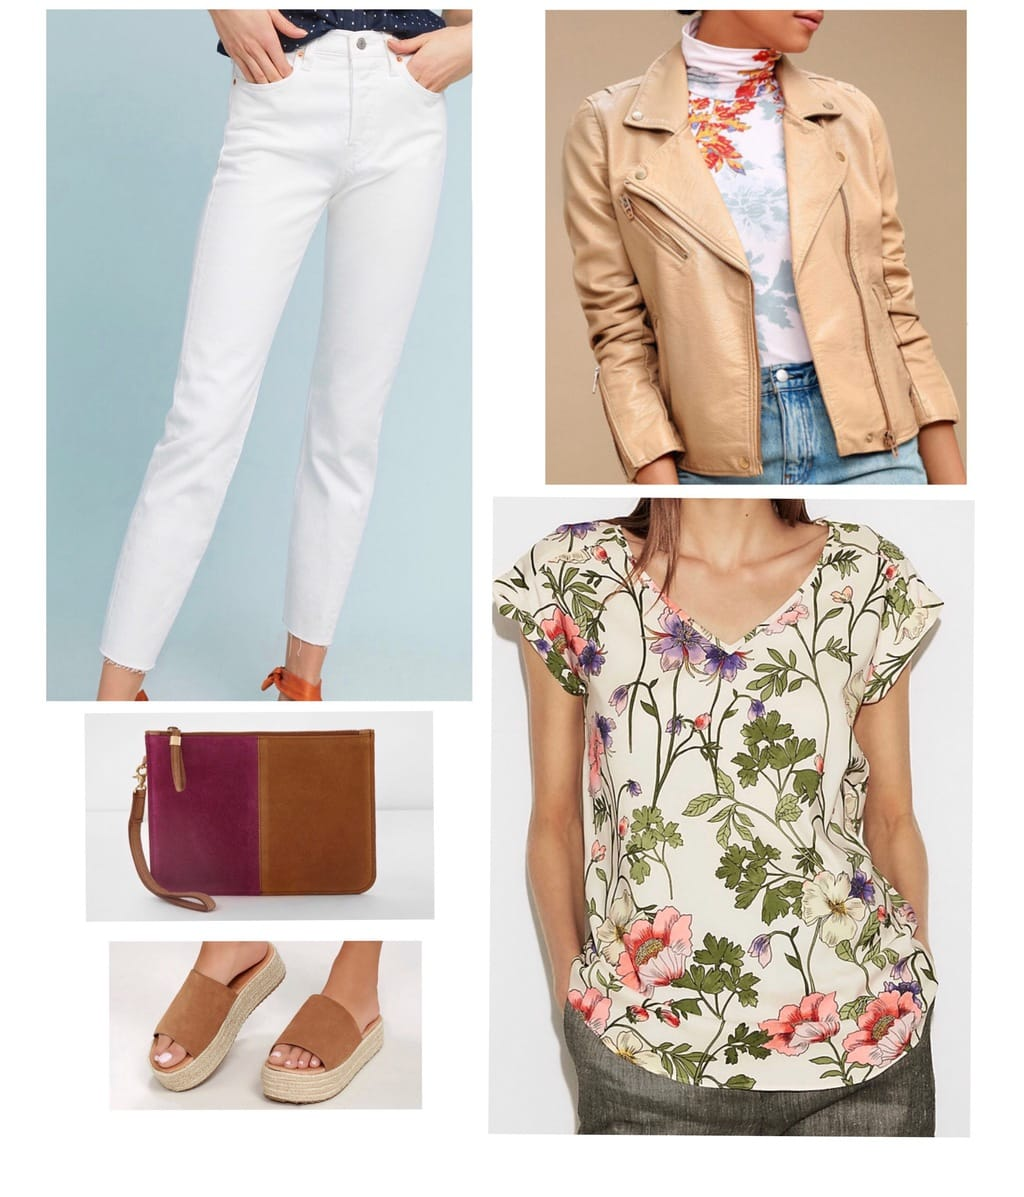 White denim jeans styled with a floral print shirt, platform sandals and leather jacket